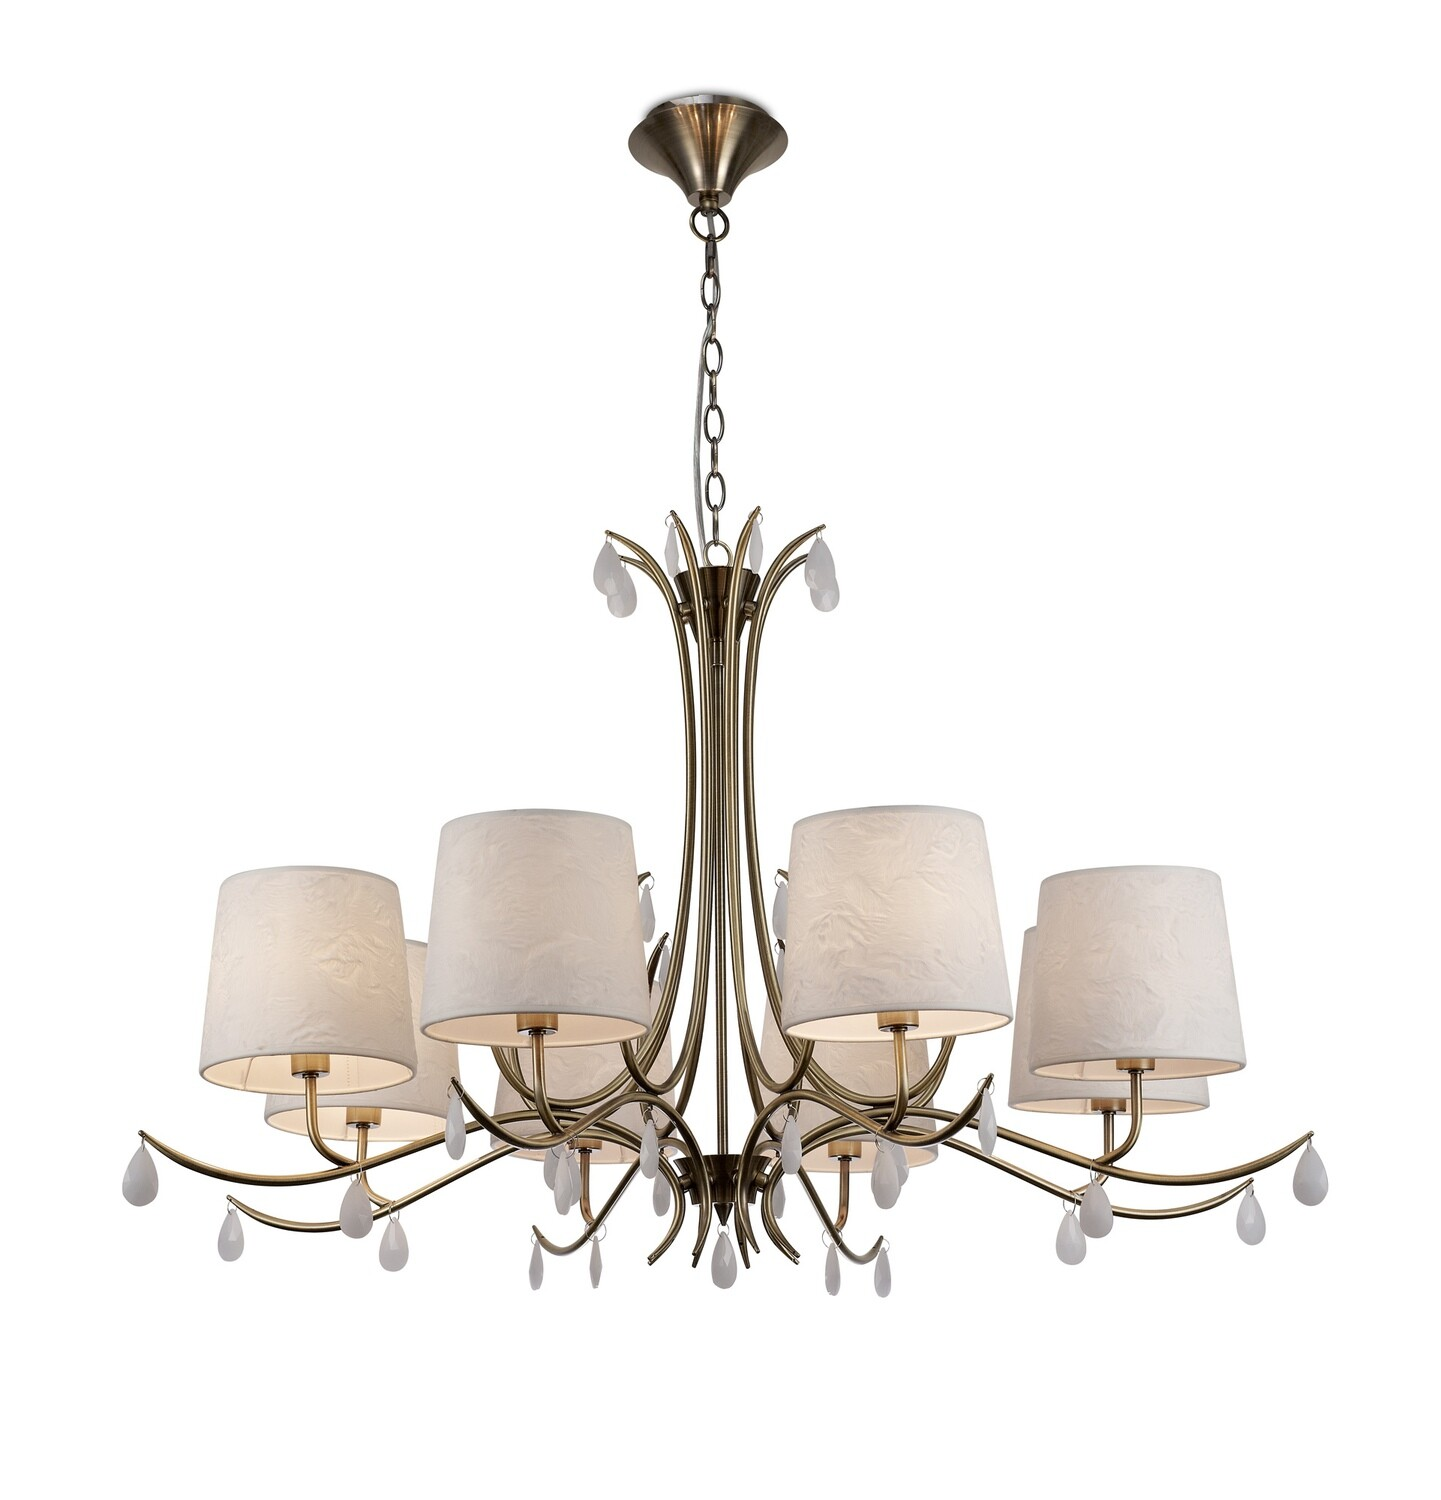 Andrea Pendant 100cm Round, 8 x E14 Antique Brass, White Shades, White Crystal Droplets